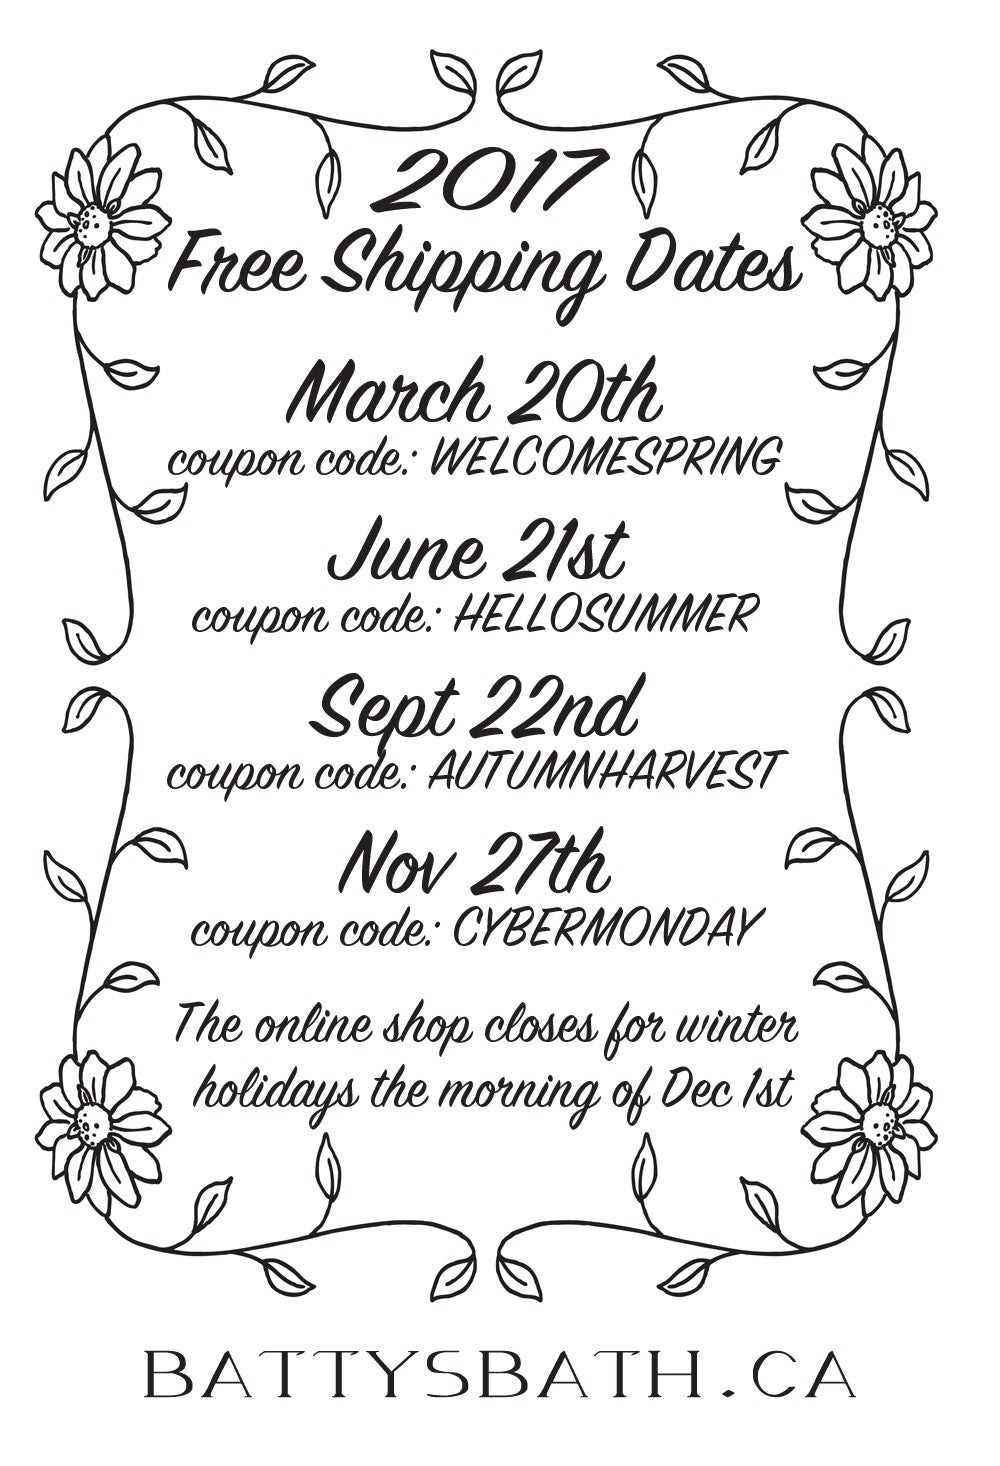 Free Shipping at Batty's Bath on Natural Skin Care and Cruelty Free Cosmetics